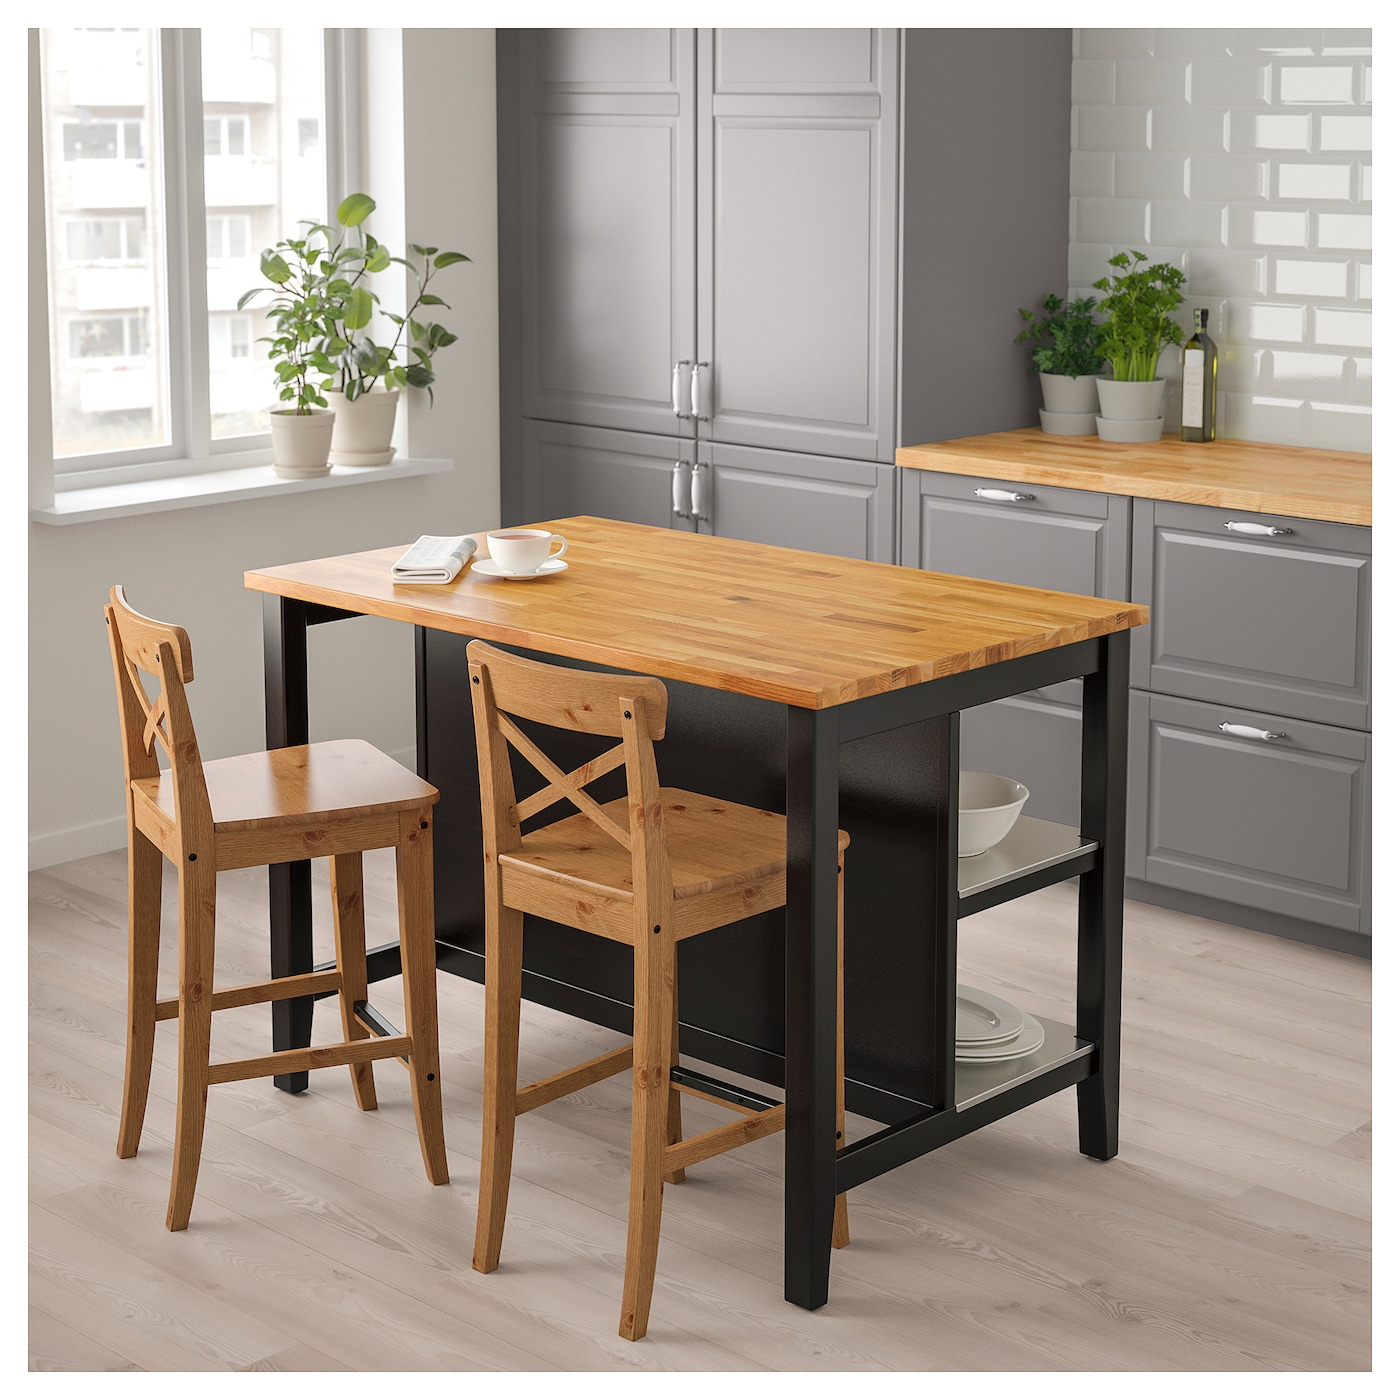 STENSTORP Kitchen Island Black-brown/oak 126x79 Cm